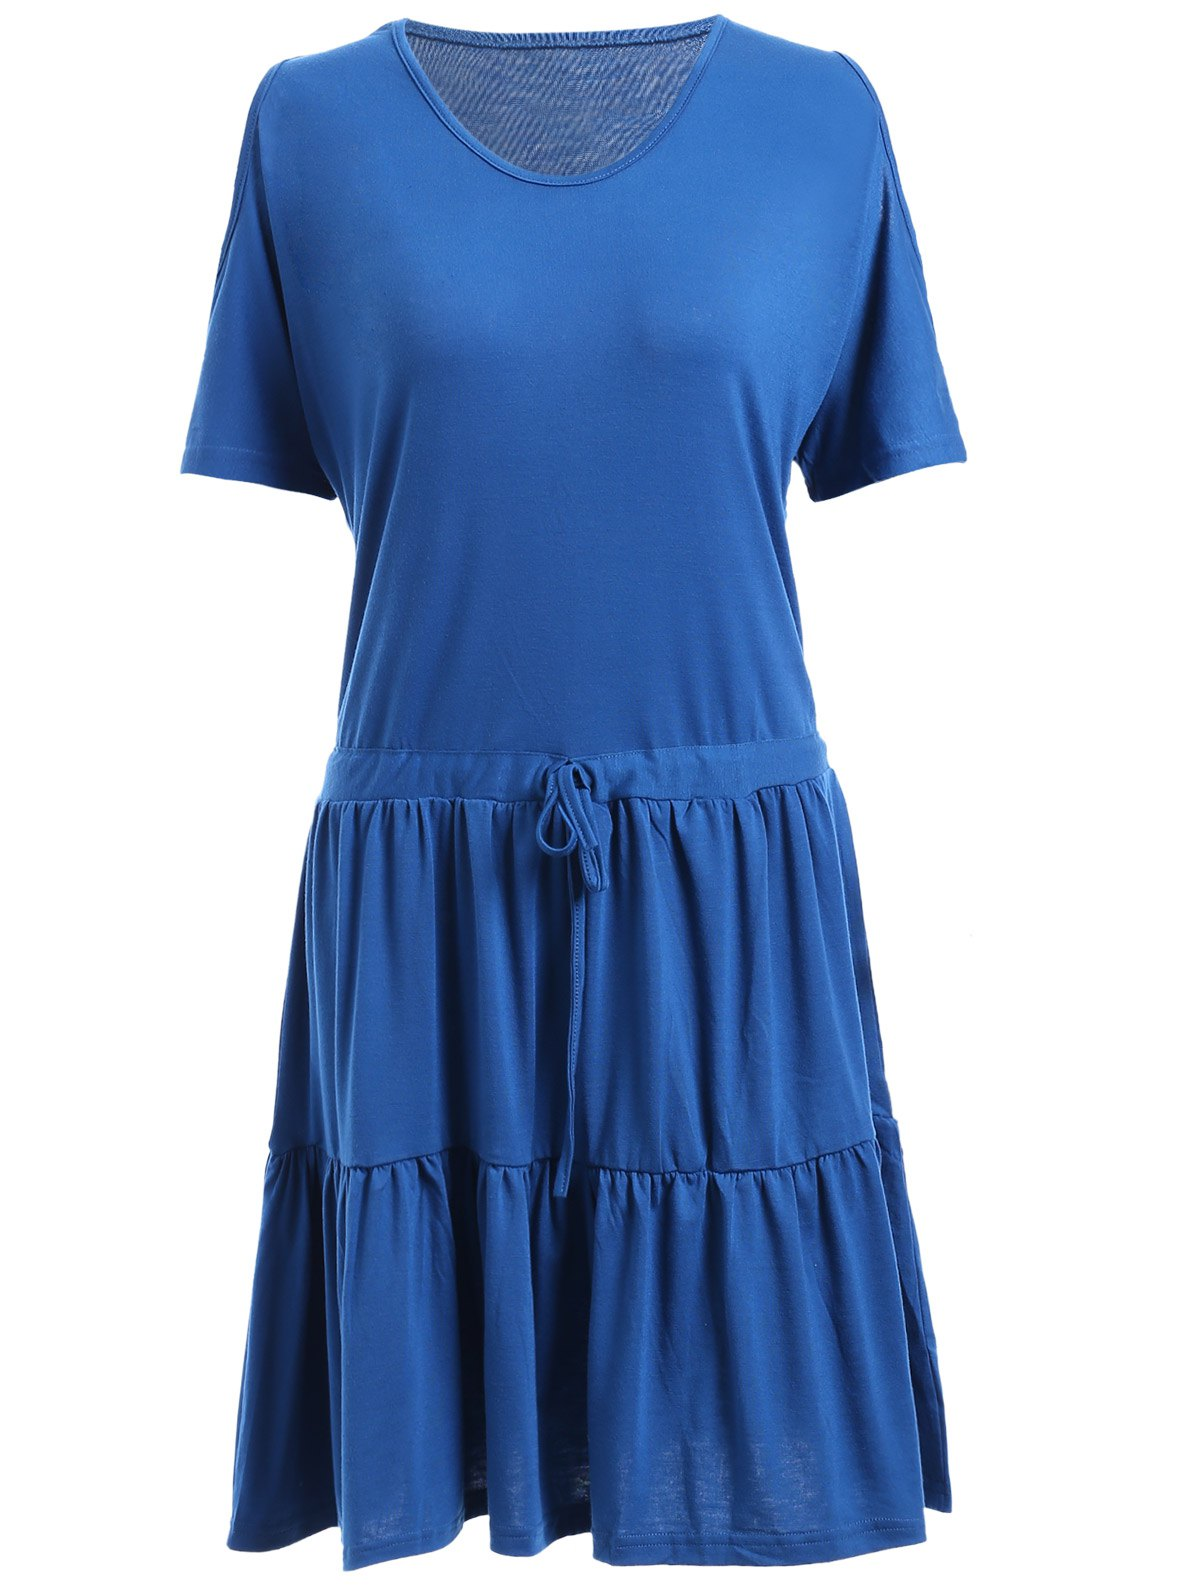 Casual Women's Scoop Neck Cold Shoulder Ruffled Dress - BLUE ONE SIZE(FIT SIZE XS TO M)